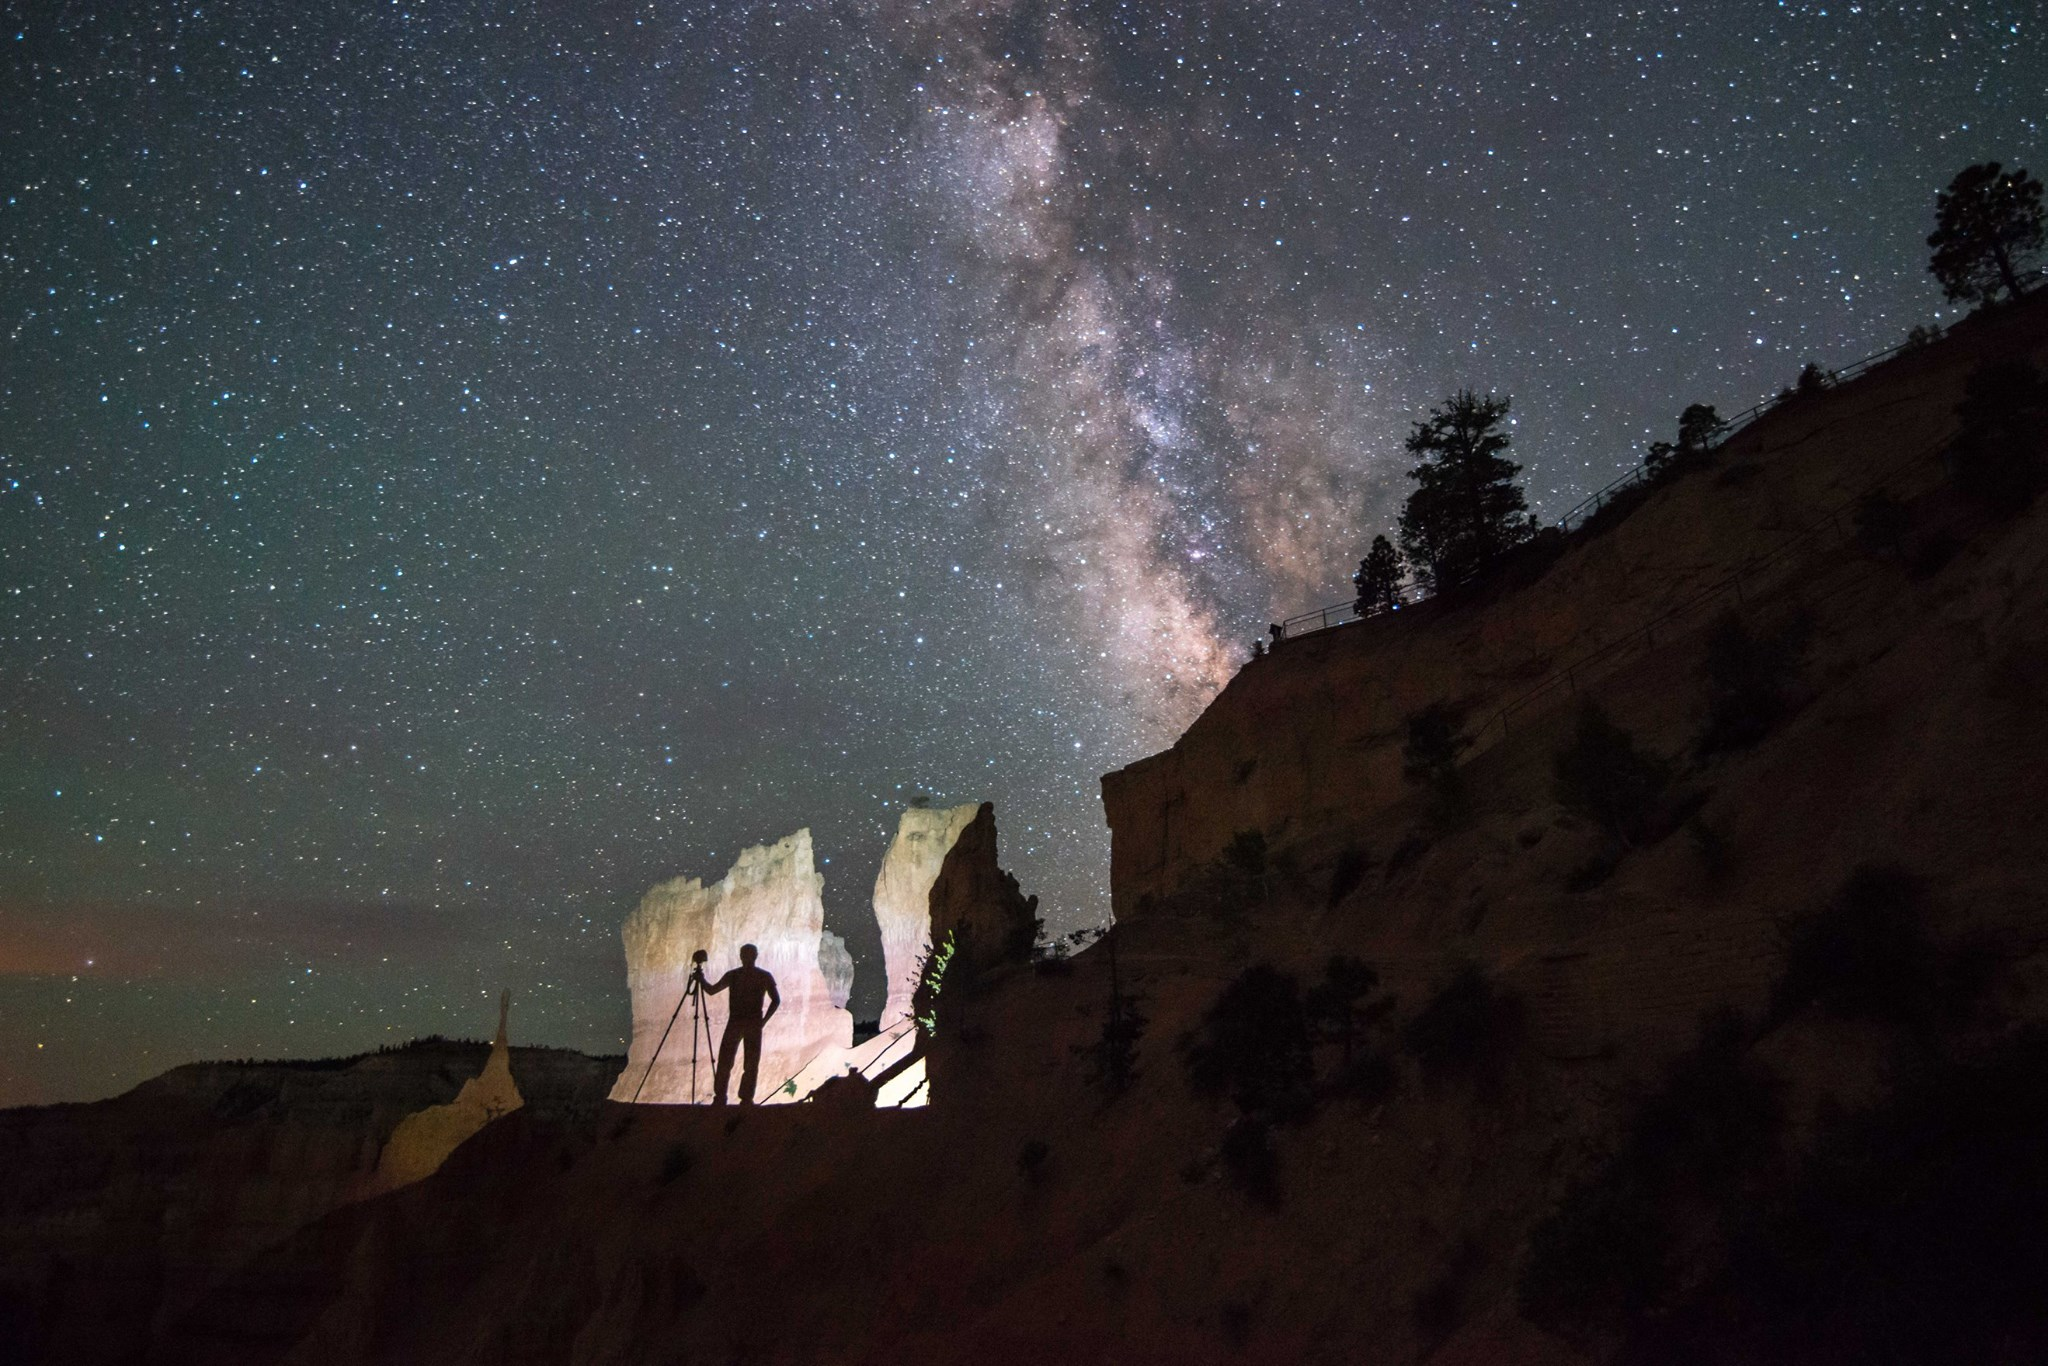 Silhouette Photographer in Bryce Canyon with Milky Way